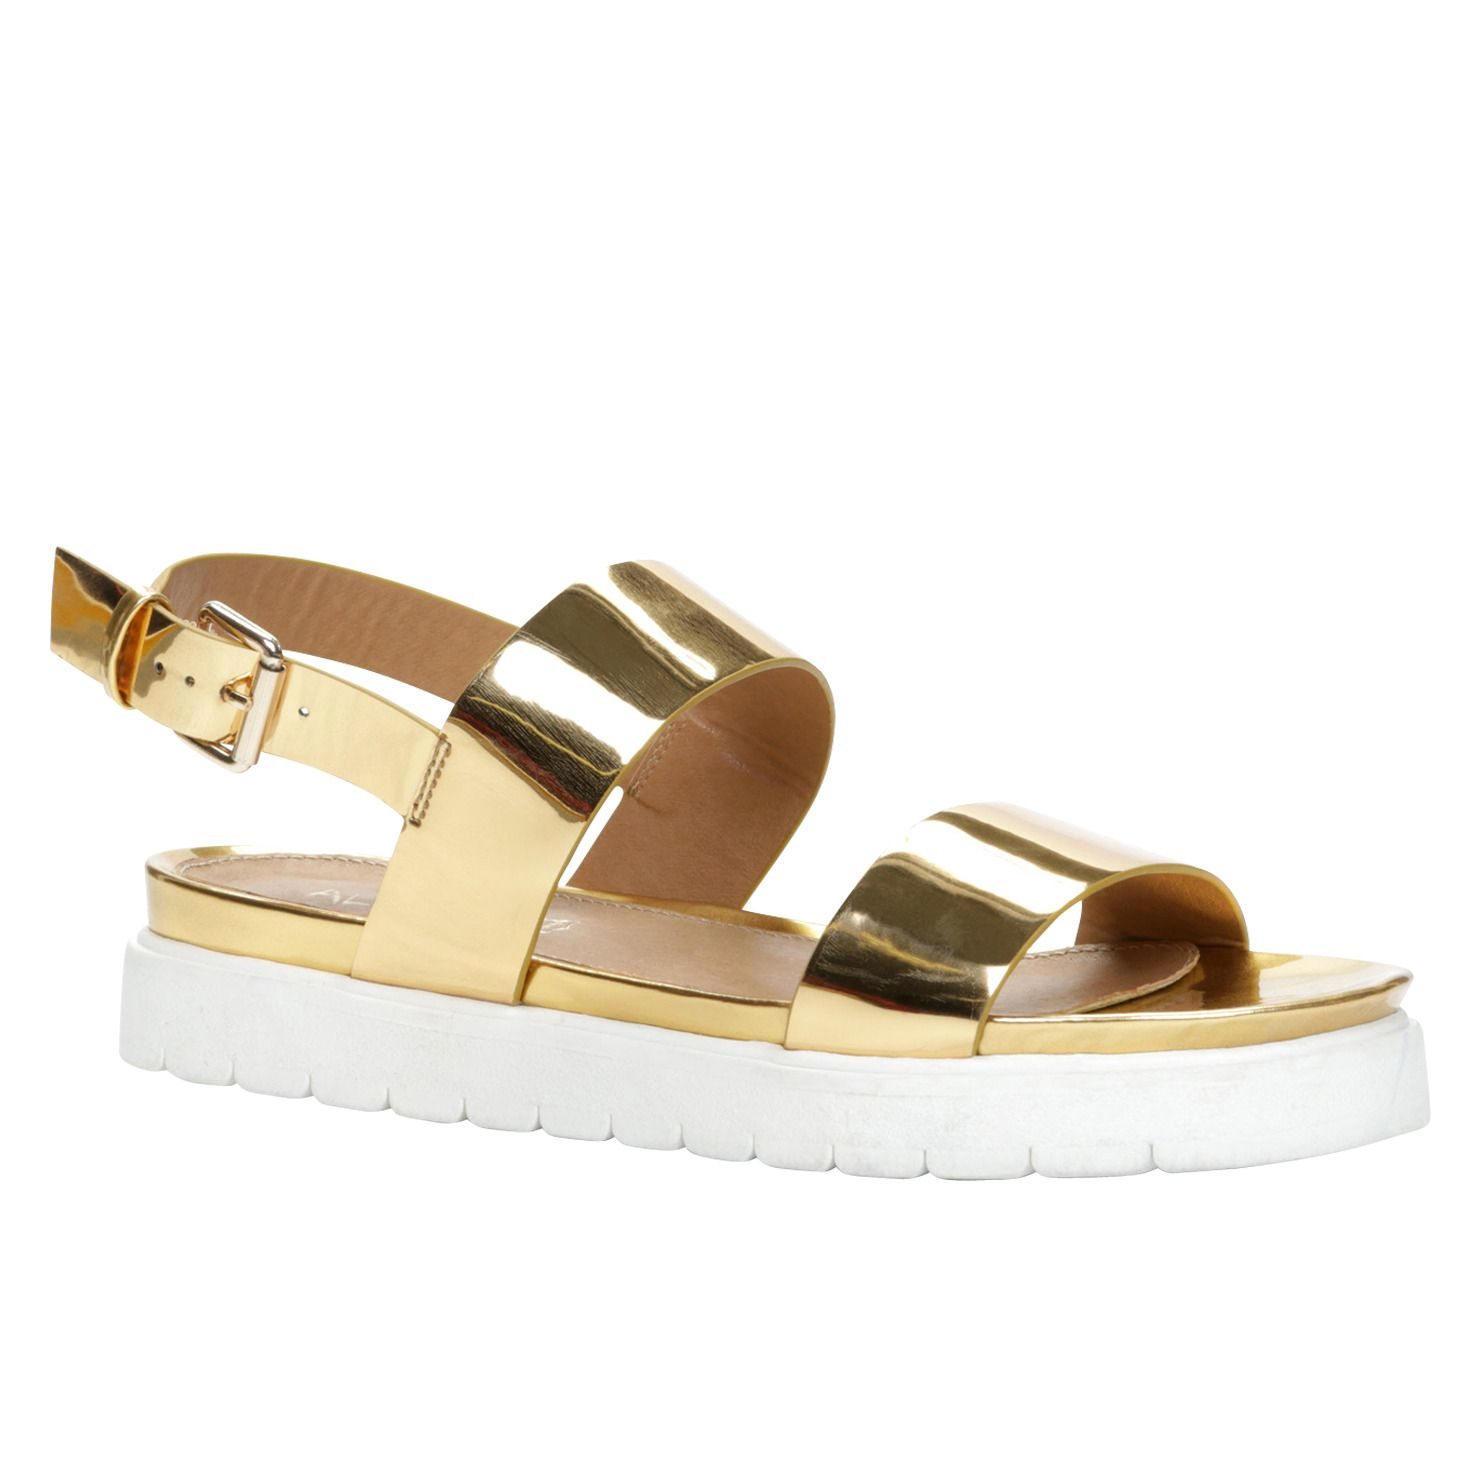 aldo shoes and sandals for women 2017 everyday summer